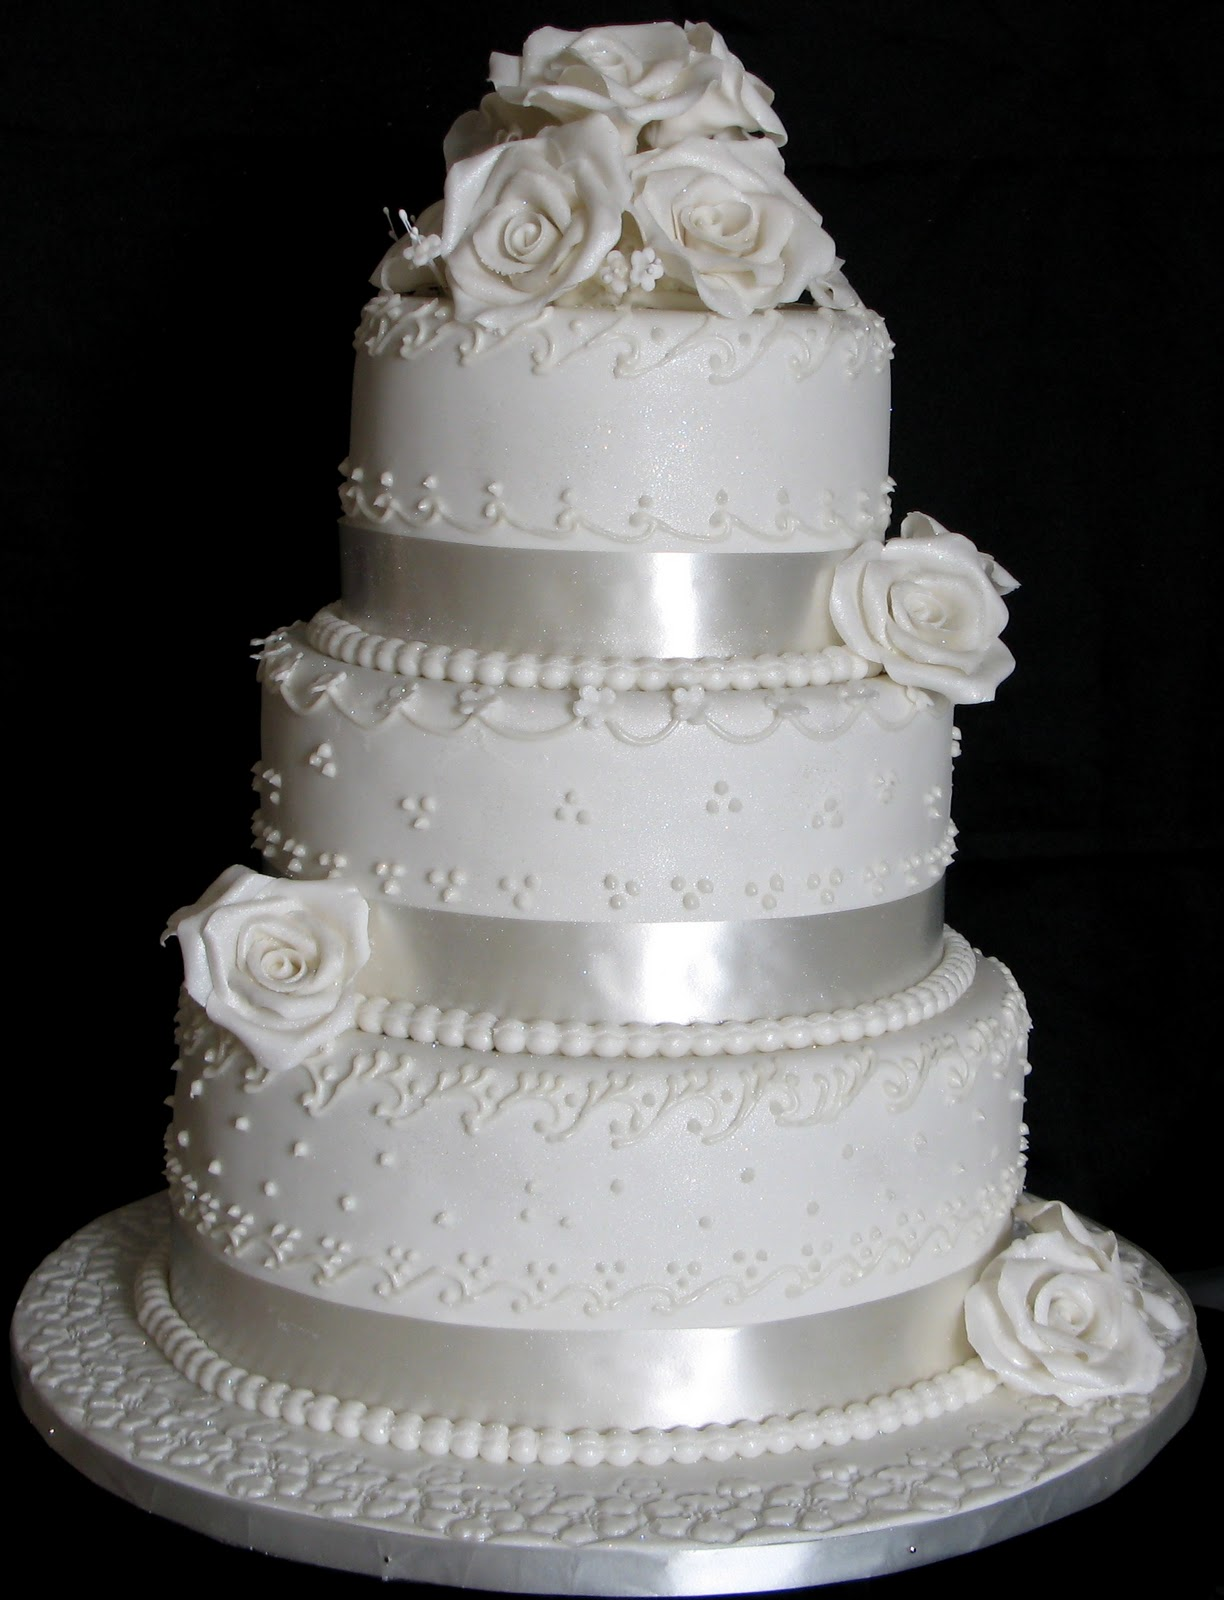 Tsa Wedding Cake